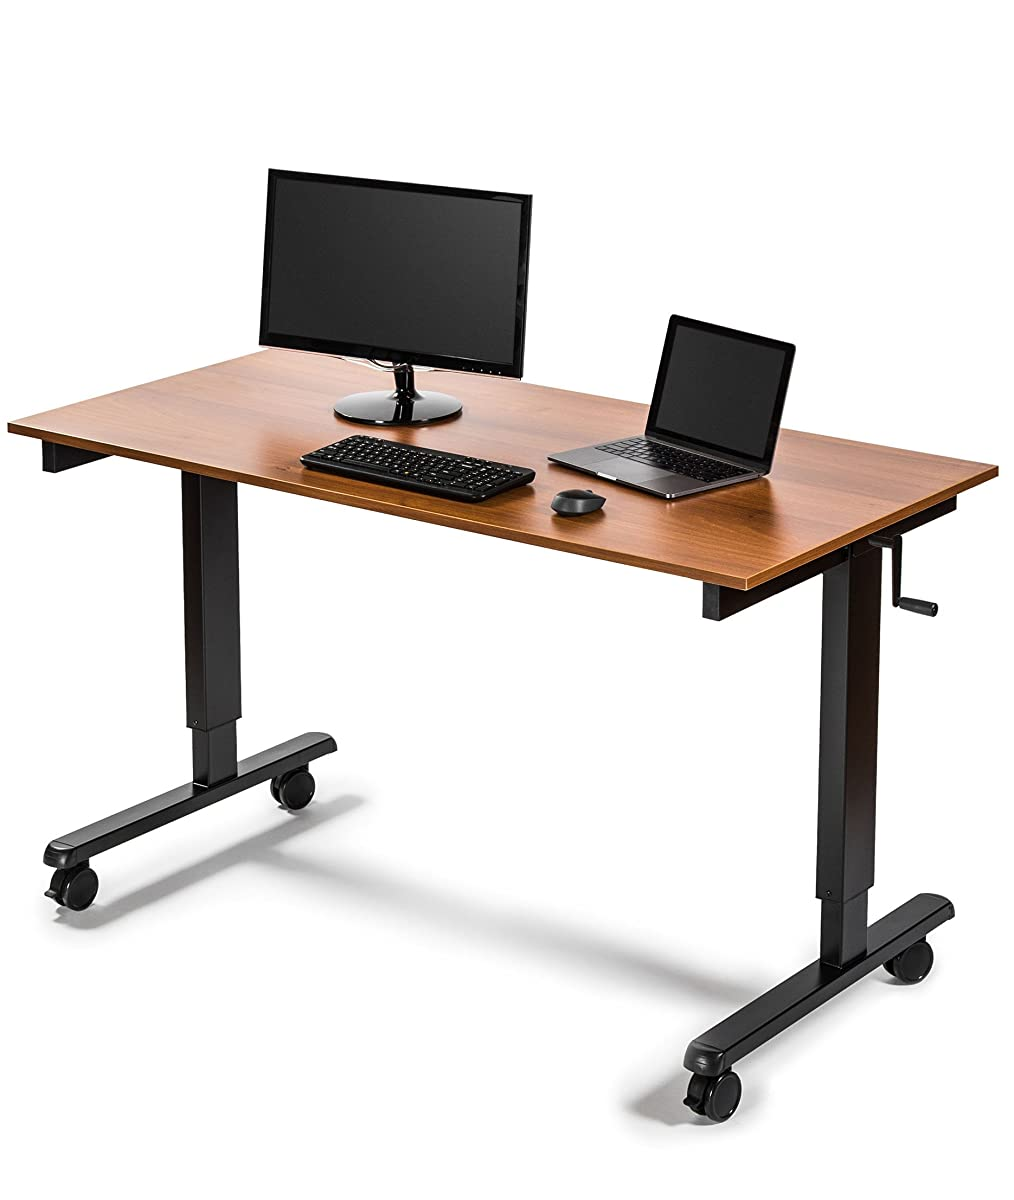 "60"" Crank Adjustable Height Standing Desk (Black Frame / Teak Top)"